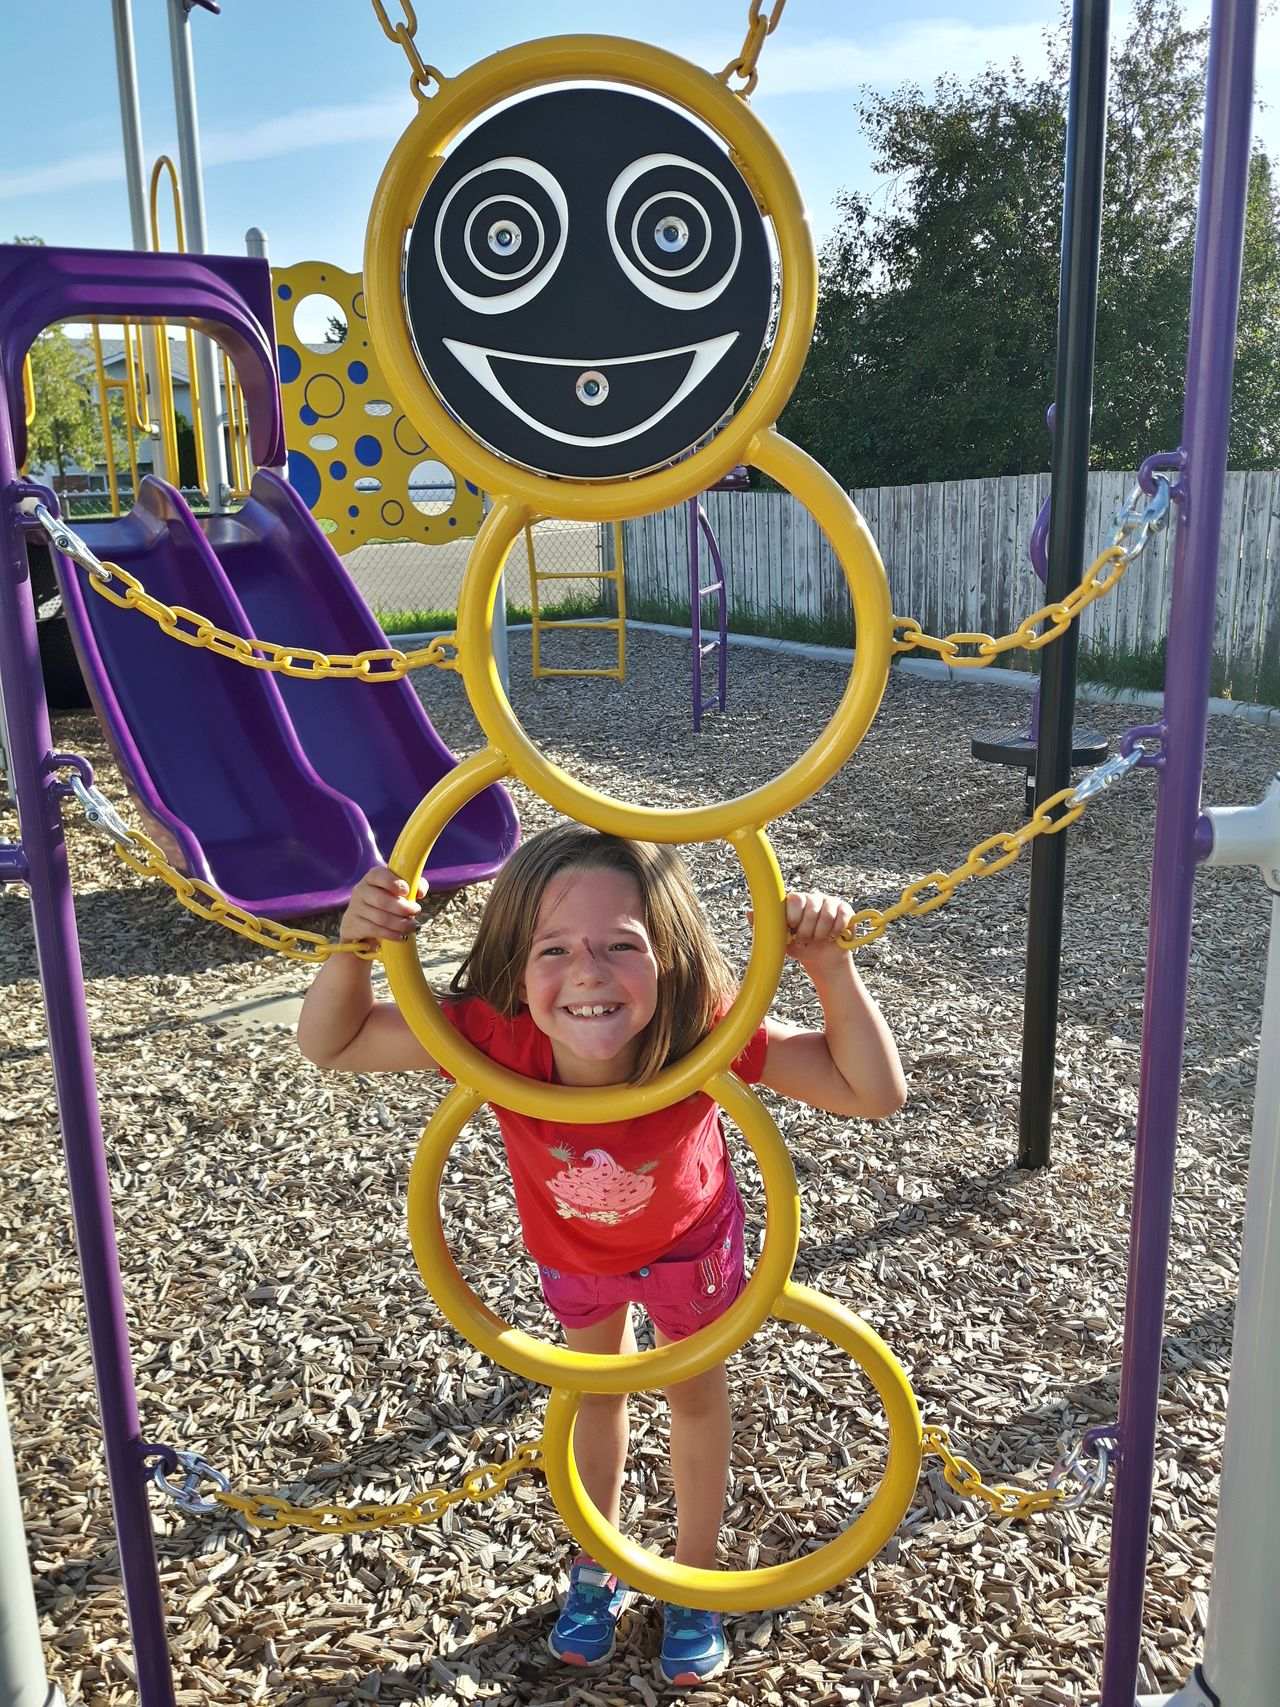 Sunshine Samsung Galaxy S5 Neo Spruce Grove, Alberta Cute Kid Child At Park Peek A Boo Daughter Park Playing At Park Smiles